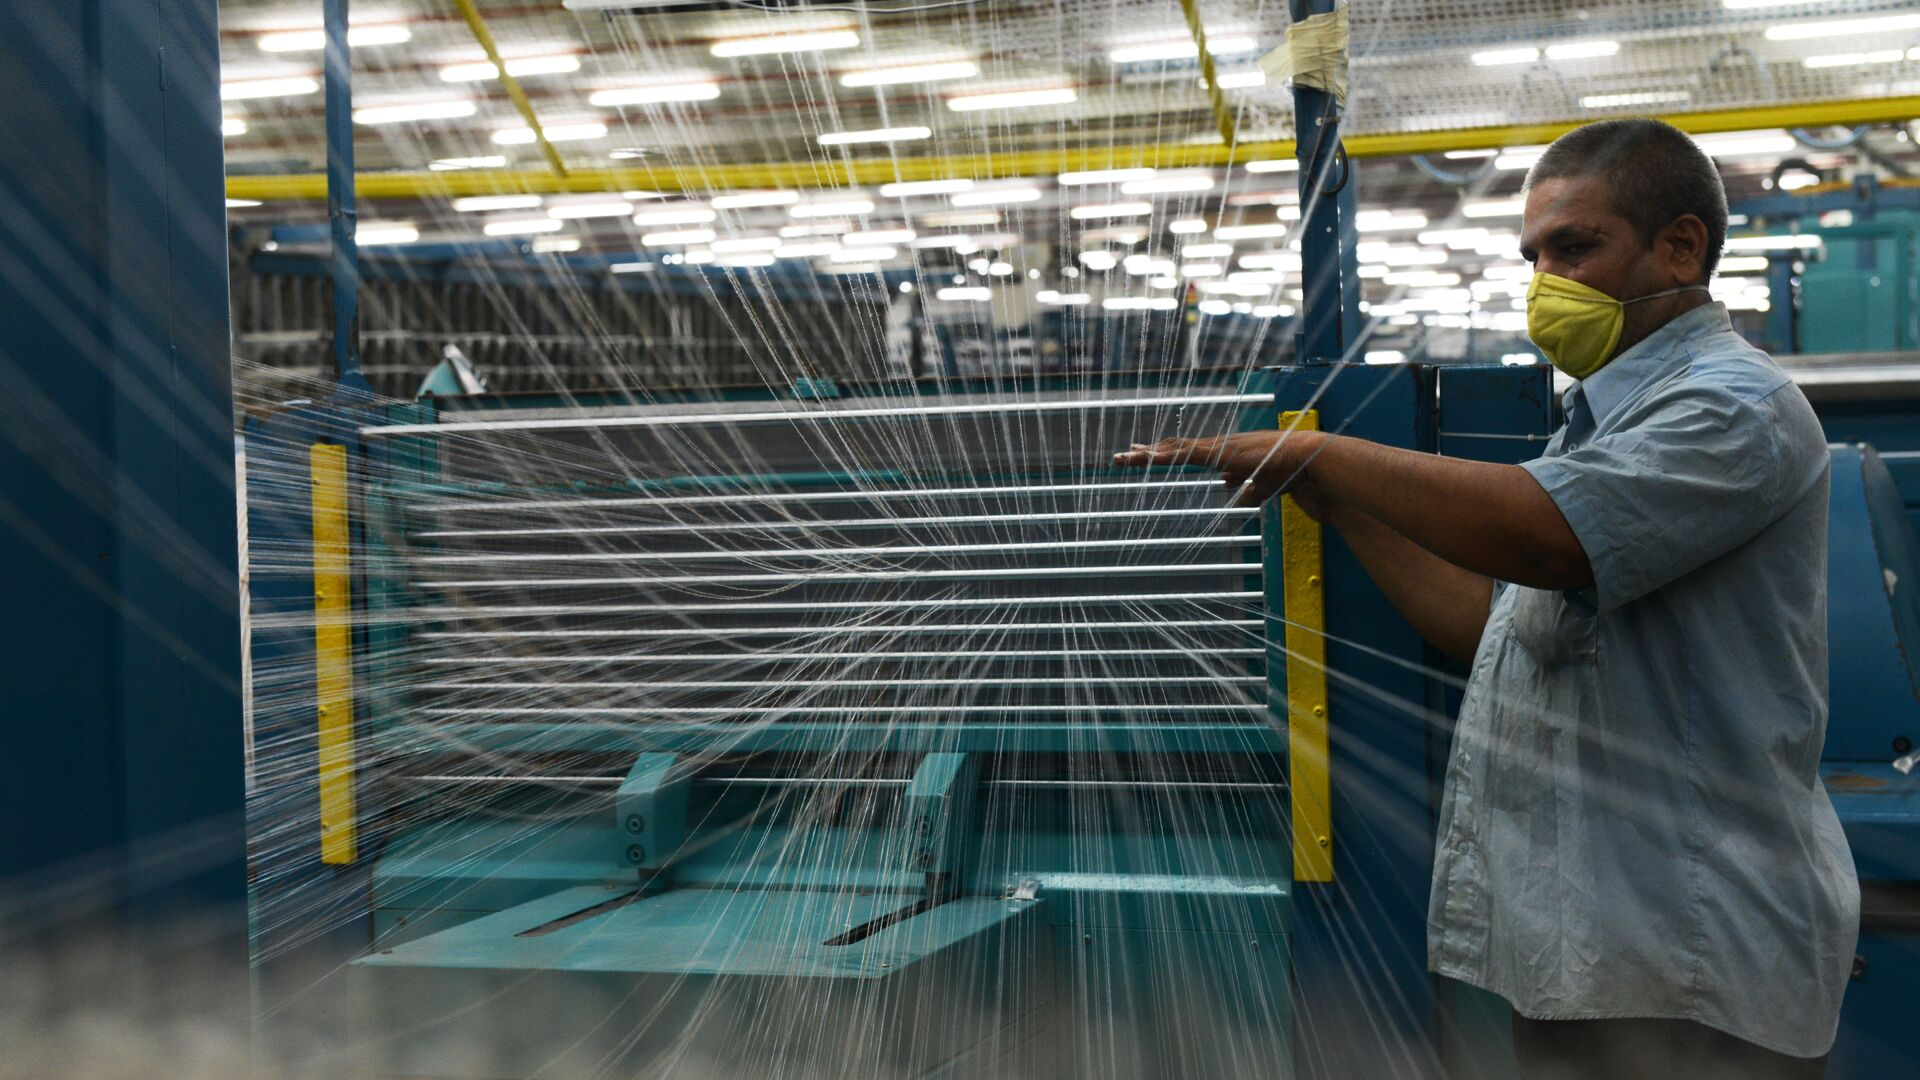 In this photograph taken on July 8, 2014 an Indian employee works at a textile factory in Khatraj village, some 20 kms from Ahmedabad. - Sputnik Mundo, 1920, 16.06.2021